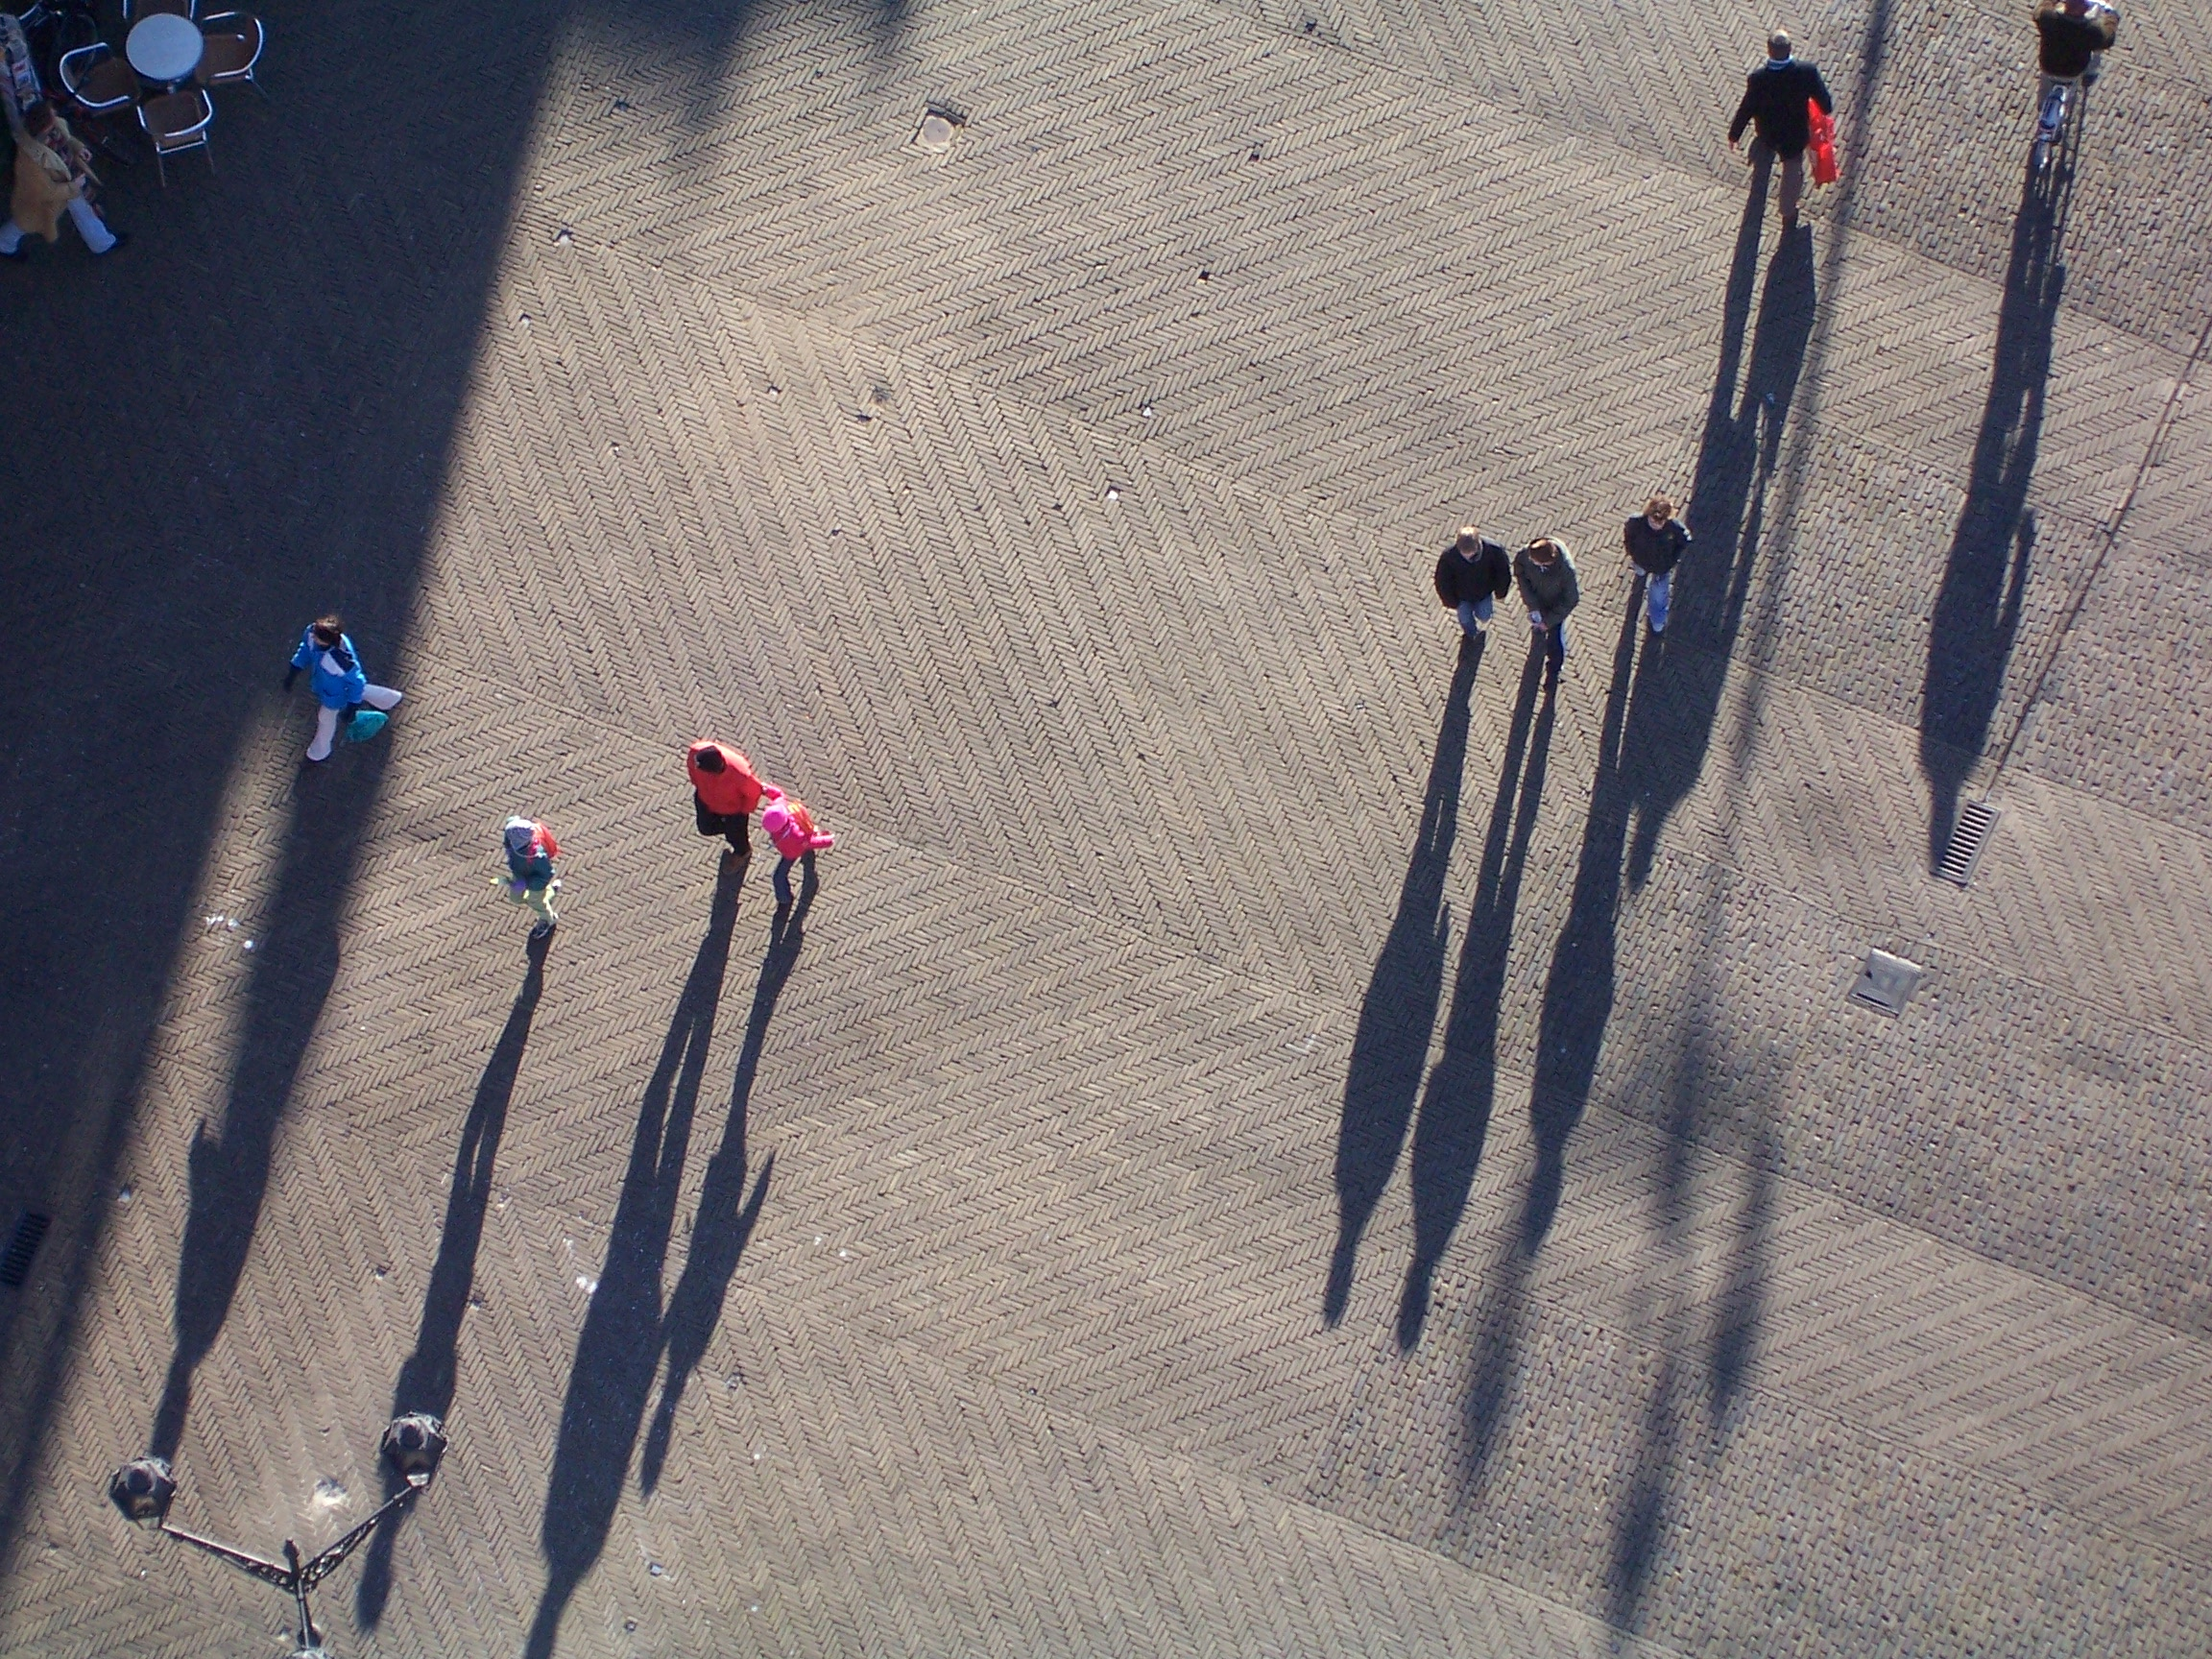 Beschrijving shadows from people jpg